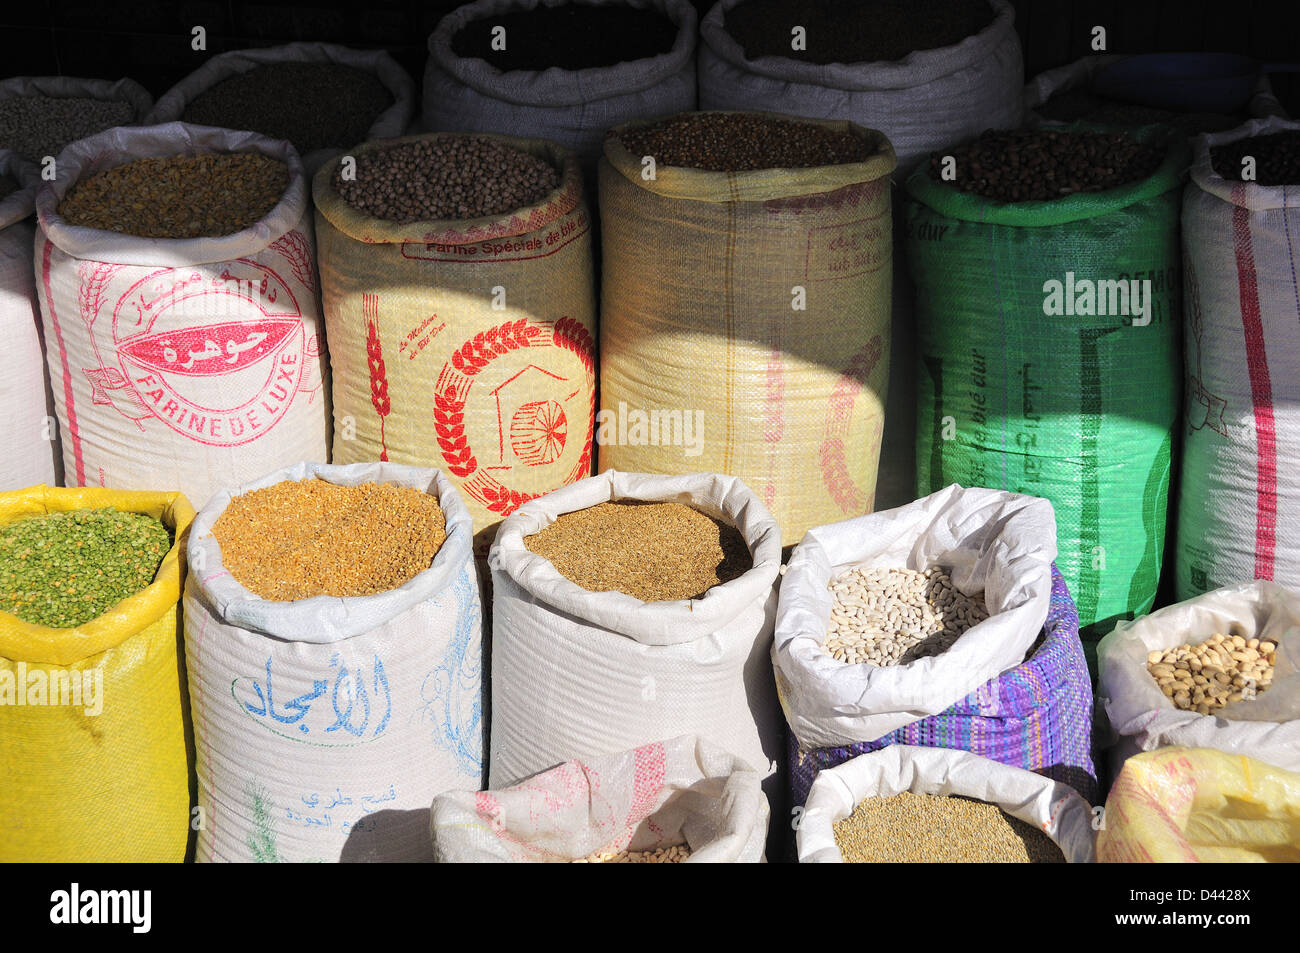 Sacks of colourful herbs and spices for sale in a market in Marrakesh, Morocco - Stock Image